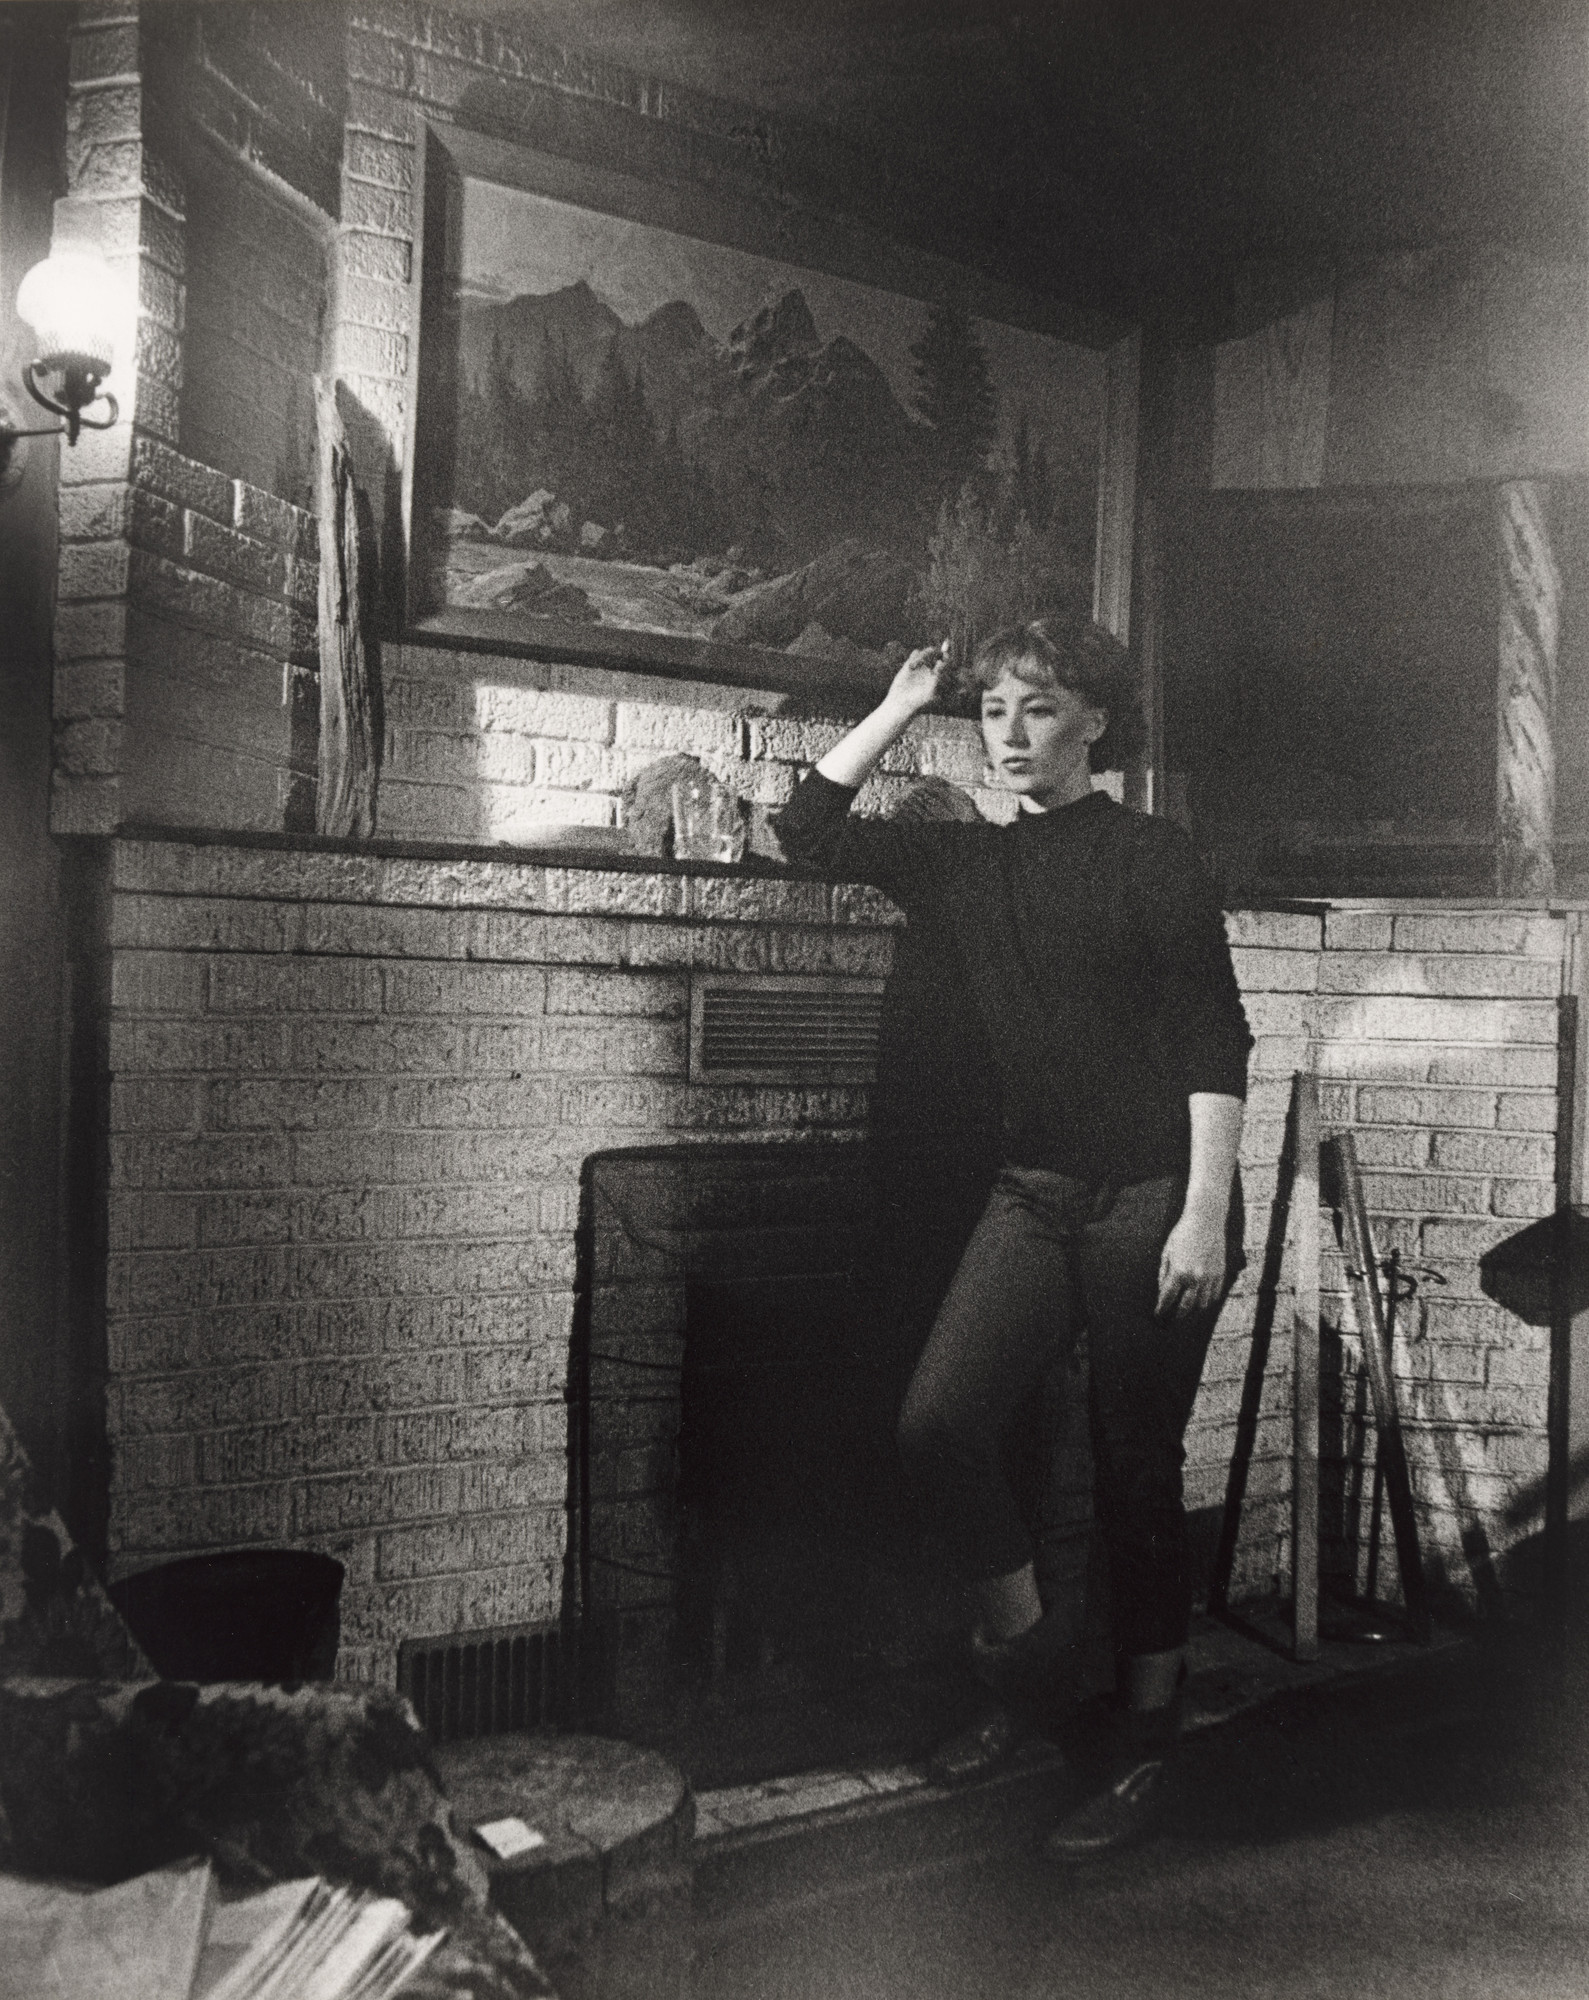 Cindy Sherman. Untitled Film Still #37. 1979